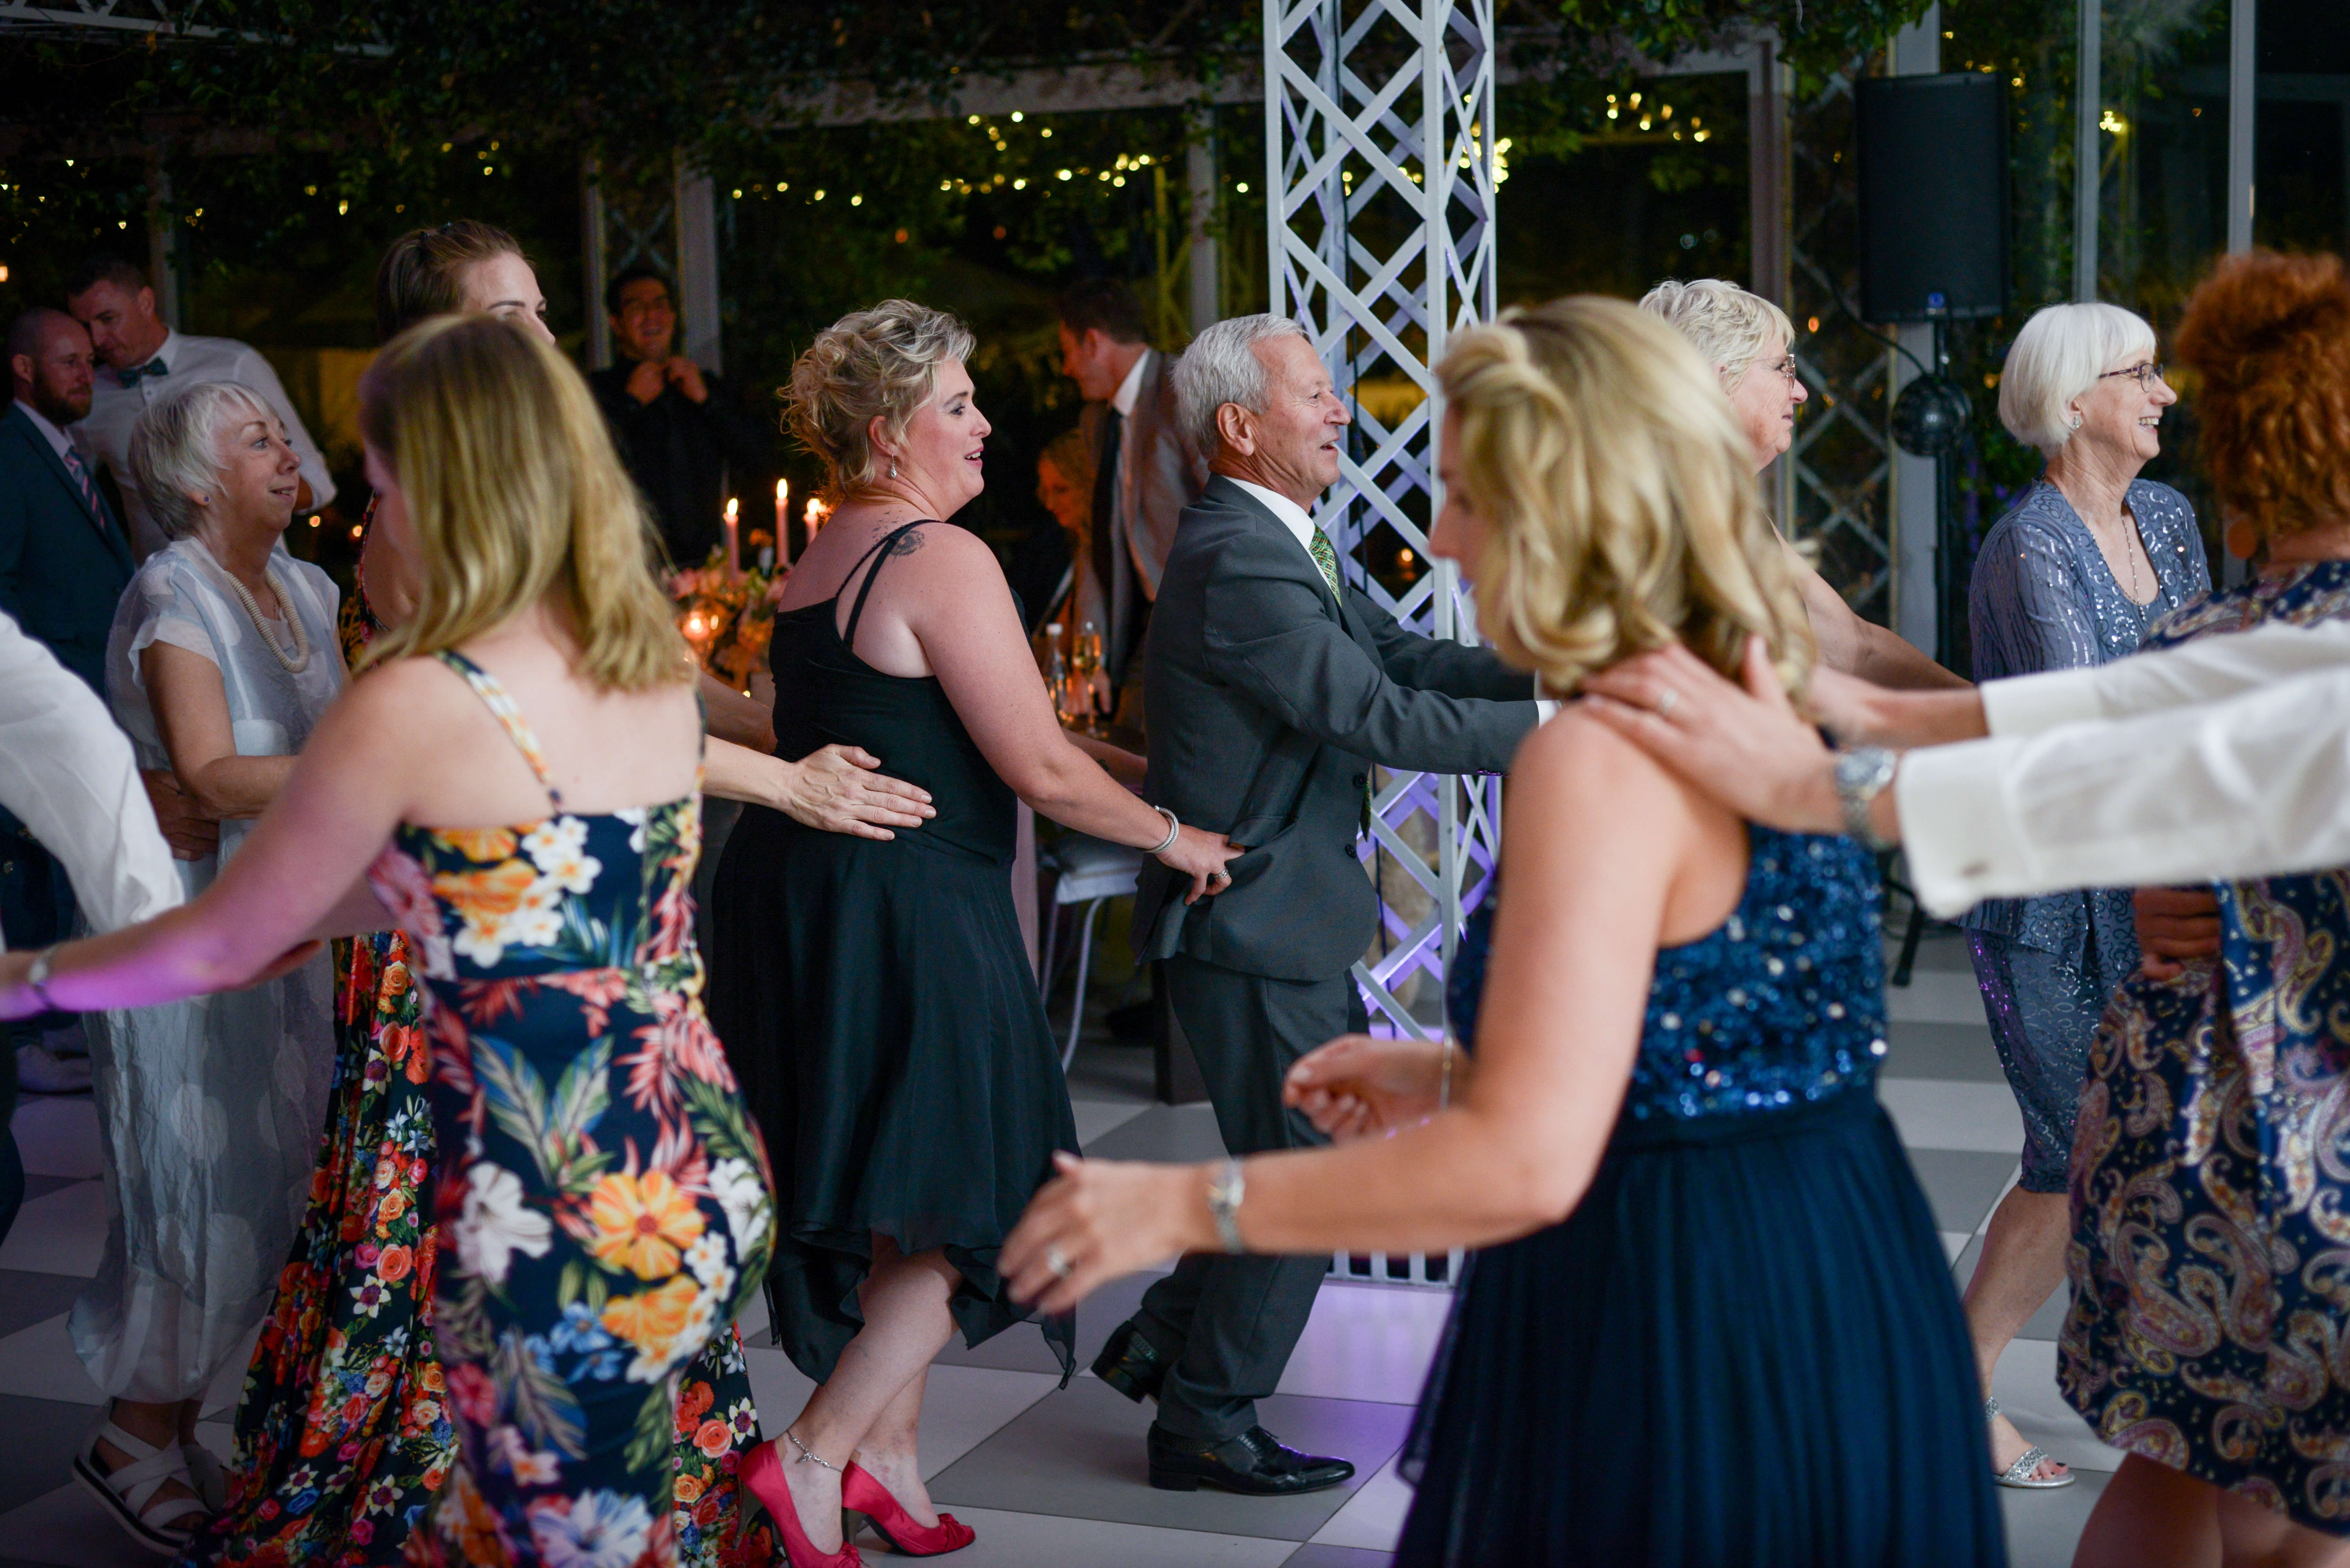 A massive crowd doing the locomotion at a beautiful Belair wedding.